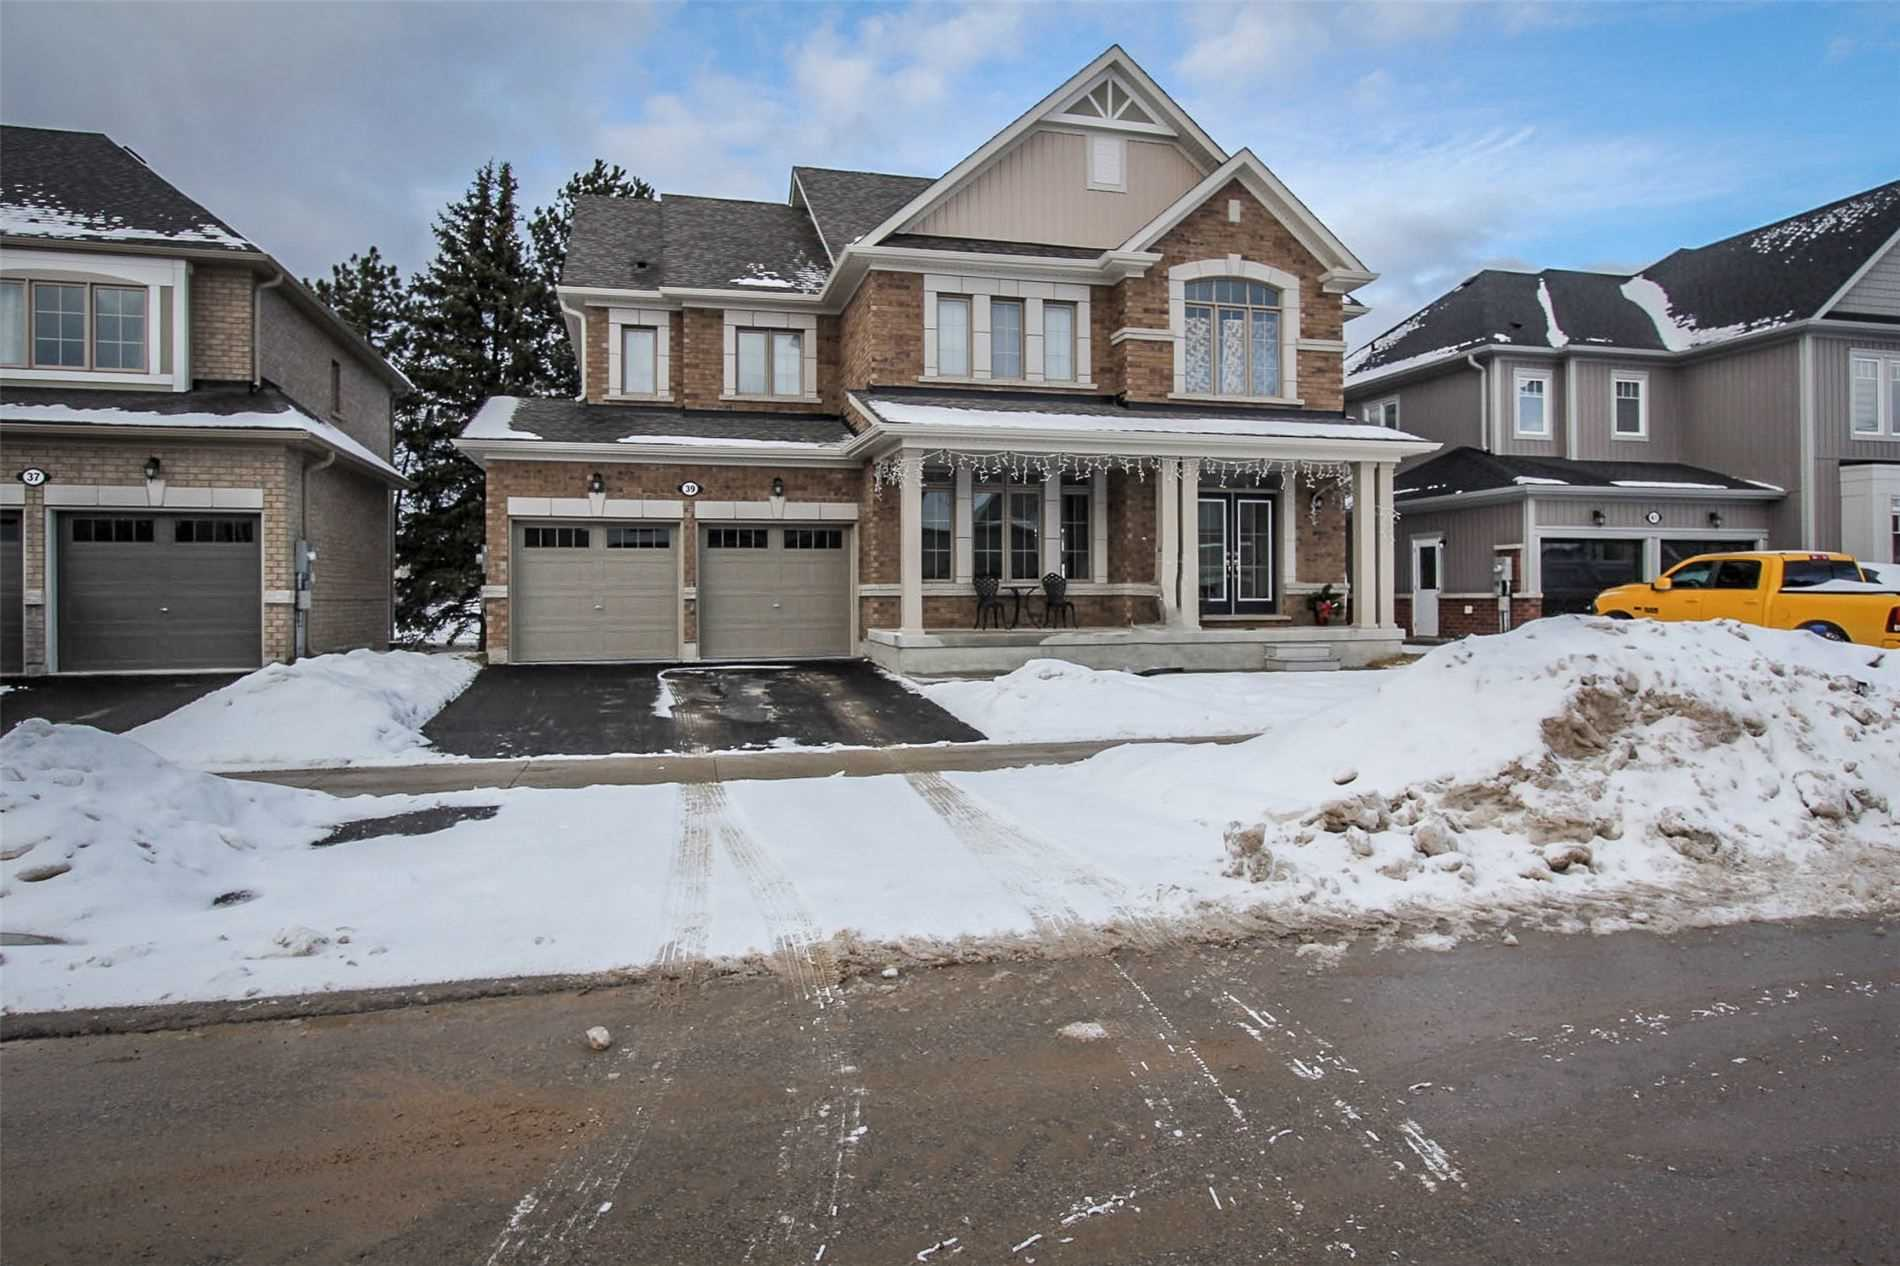 pictures of house for sale MLS: S5083661 located at 39 Mclean Ave, Collingwood L9Y3Z6